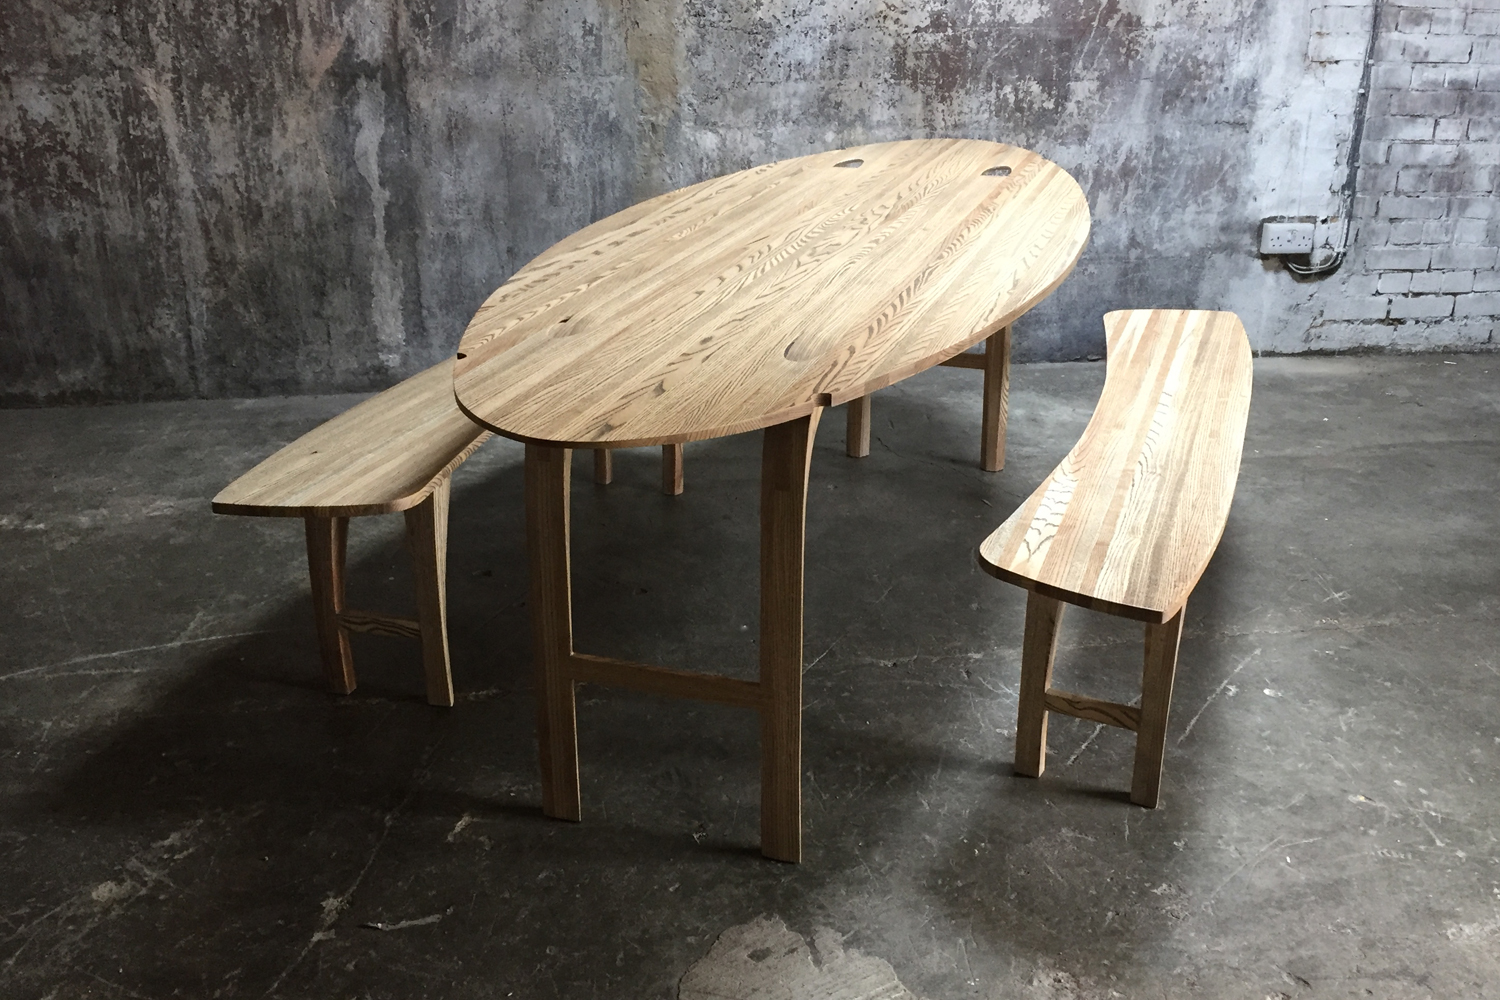 33_Oval-drop-leaf-table-in-solid-ash_7.jpg